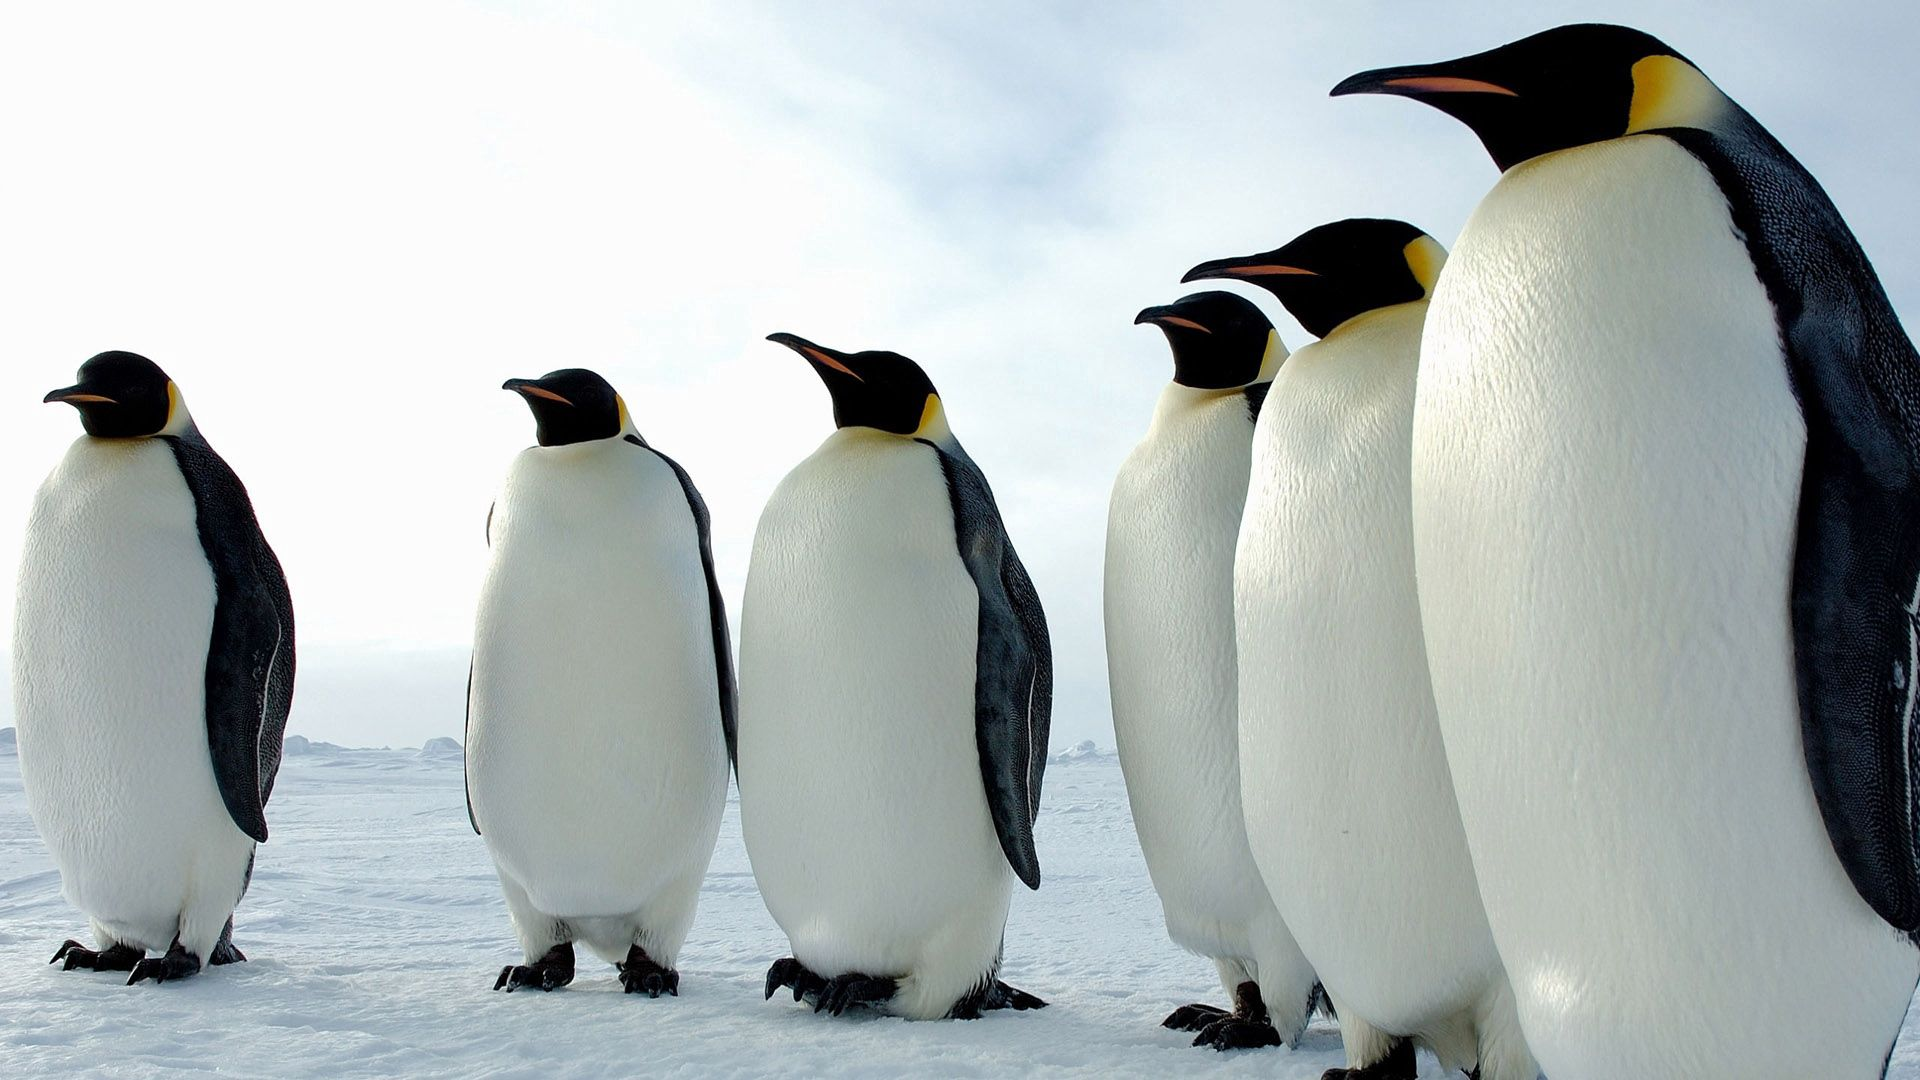 137664 download wallpaper Animals, Birds, Pinguins, Color, Flock screensavers and pictures for free